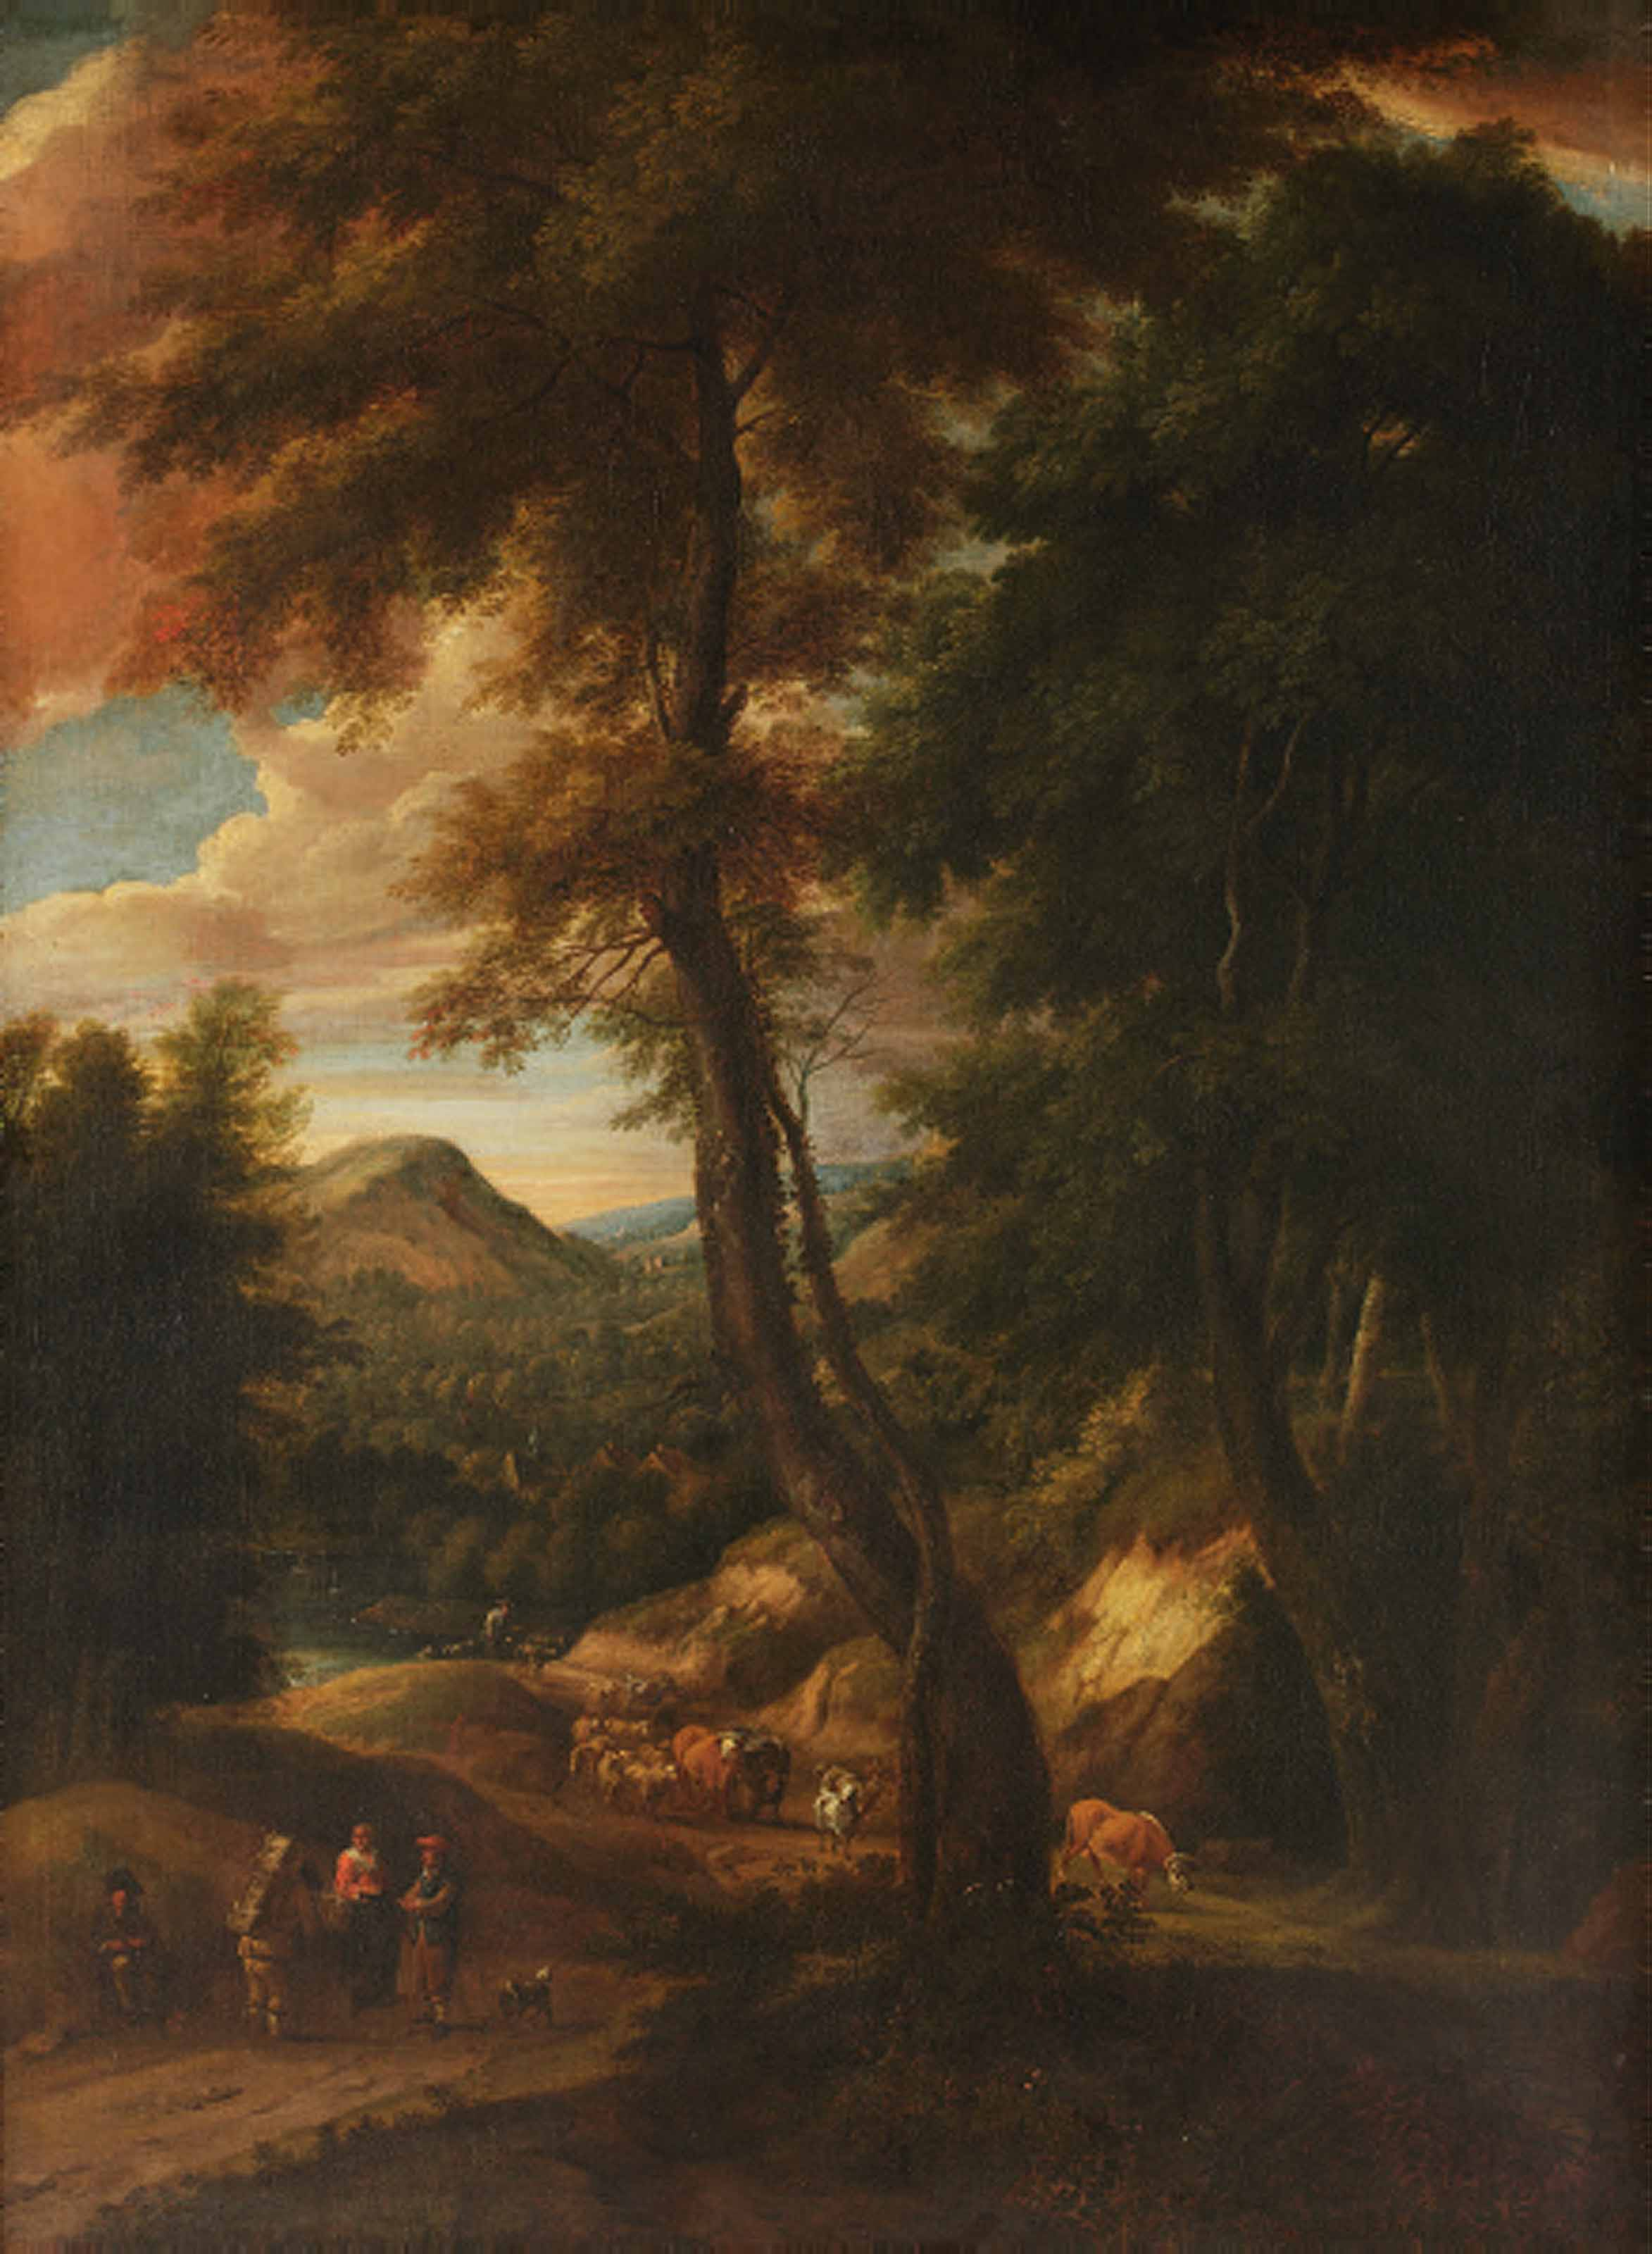 A hillside forest landscape with travellers and cattle on a path